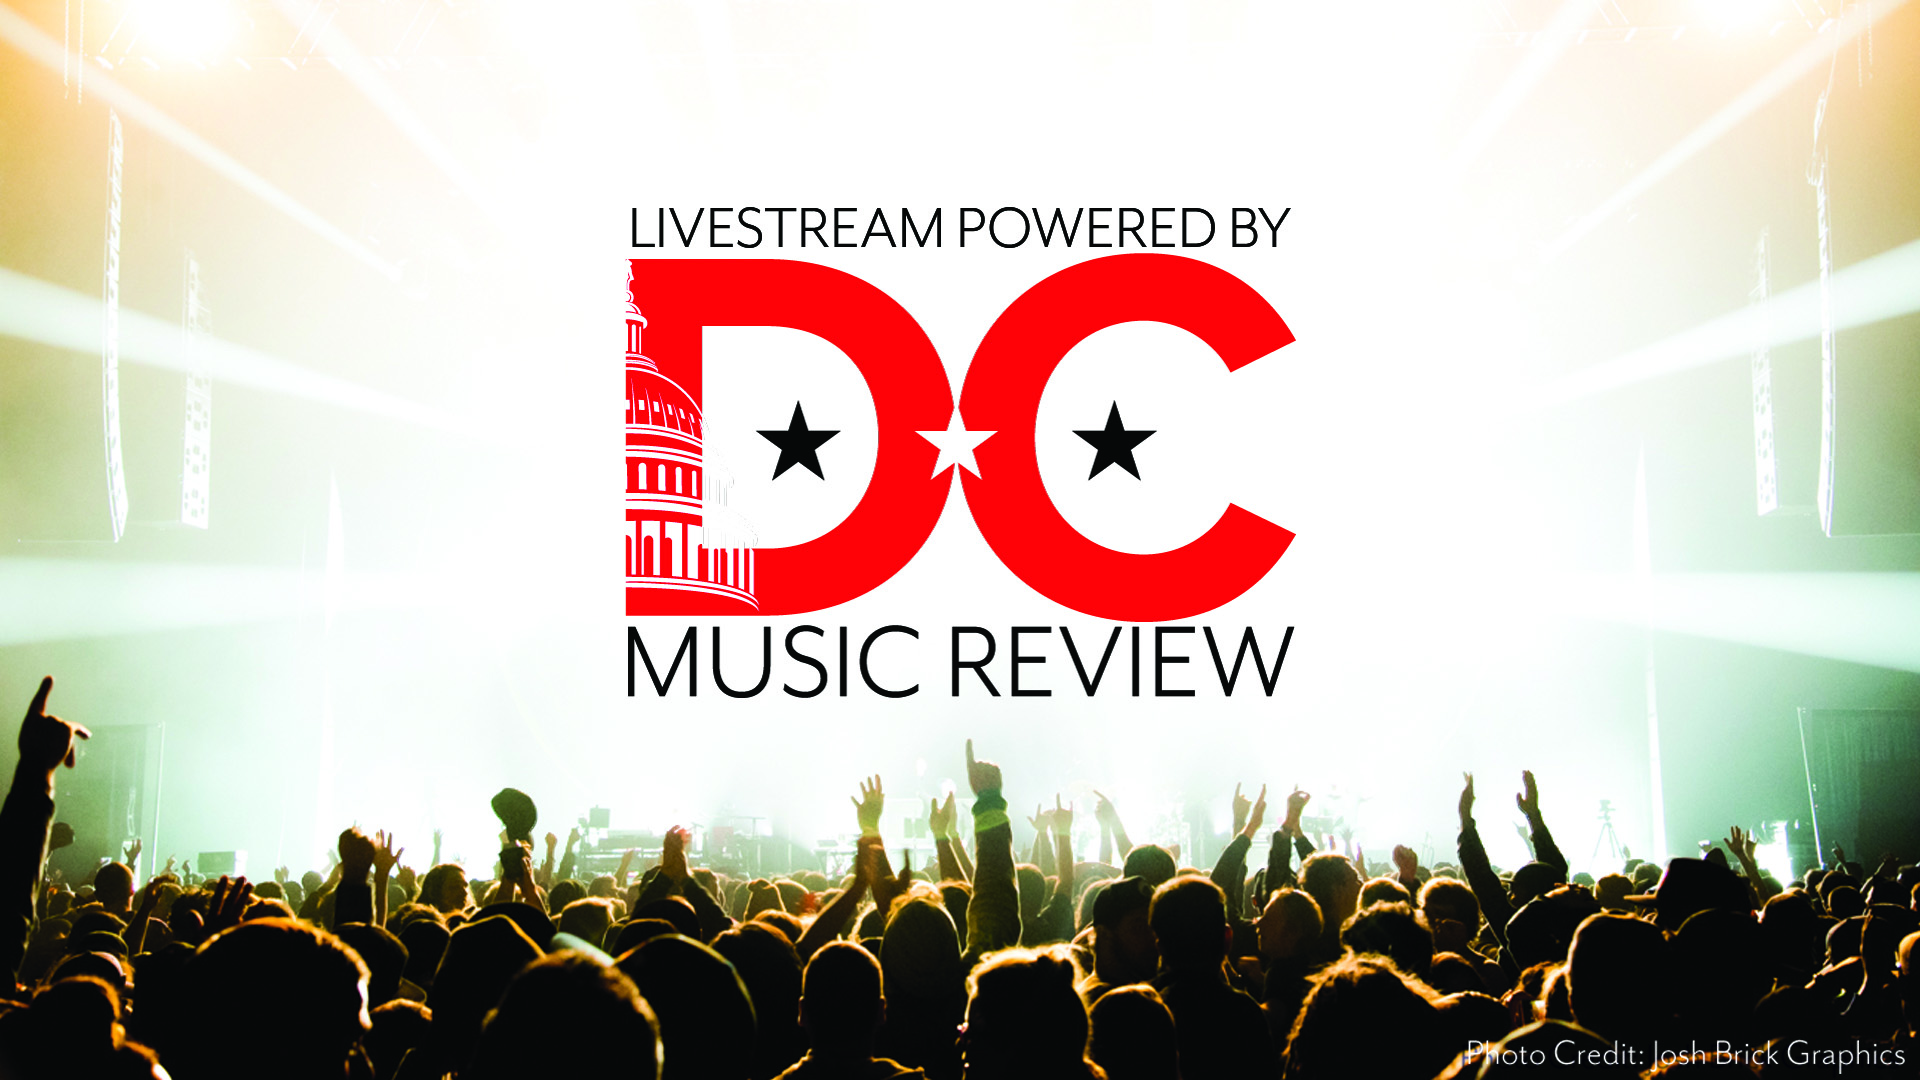 Livestream Powered By DC Music Review